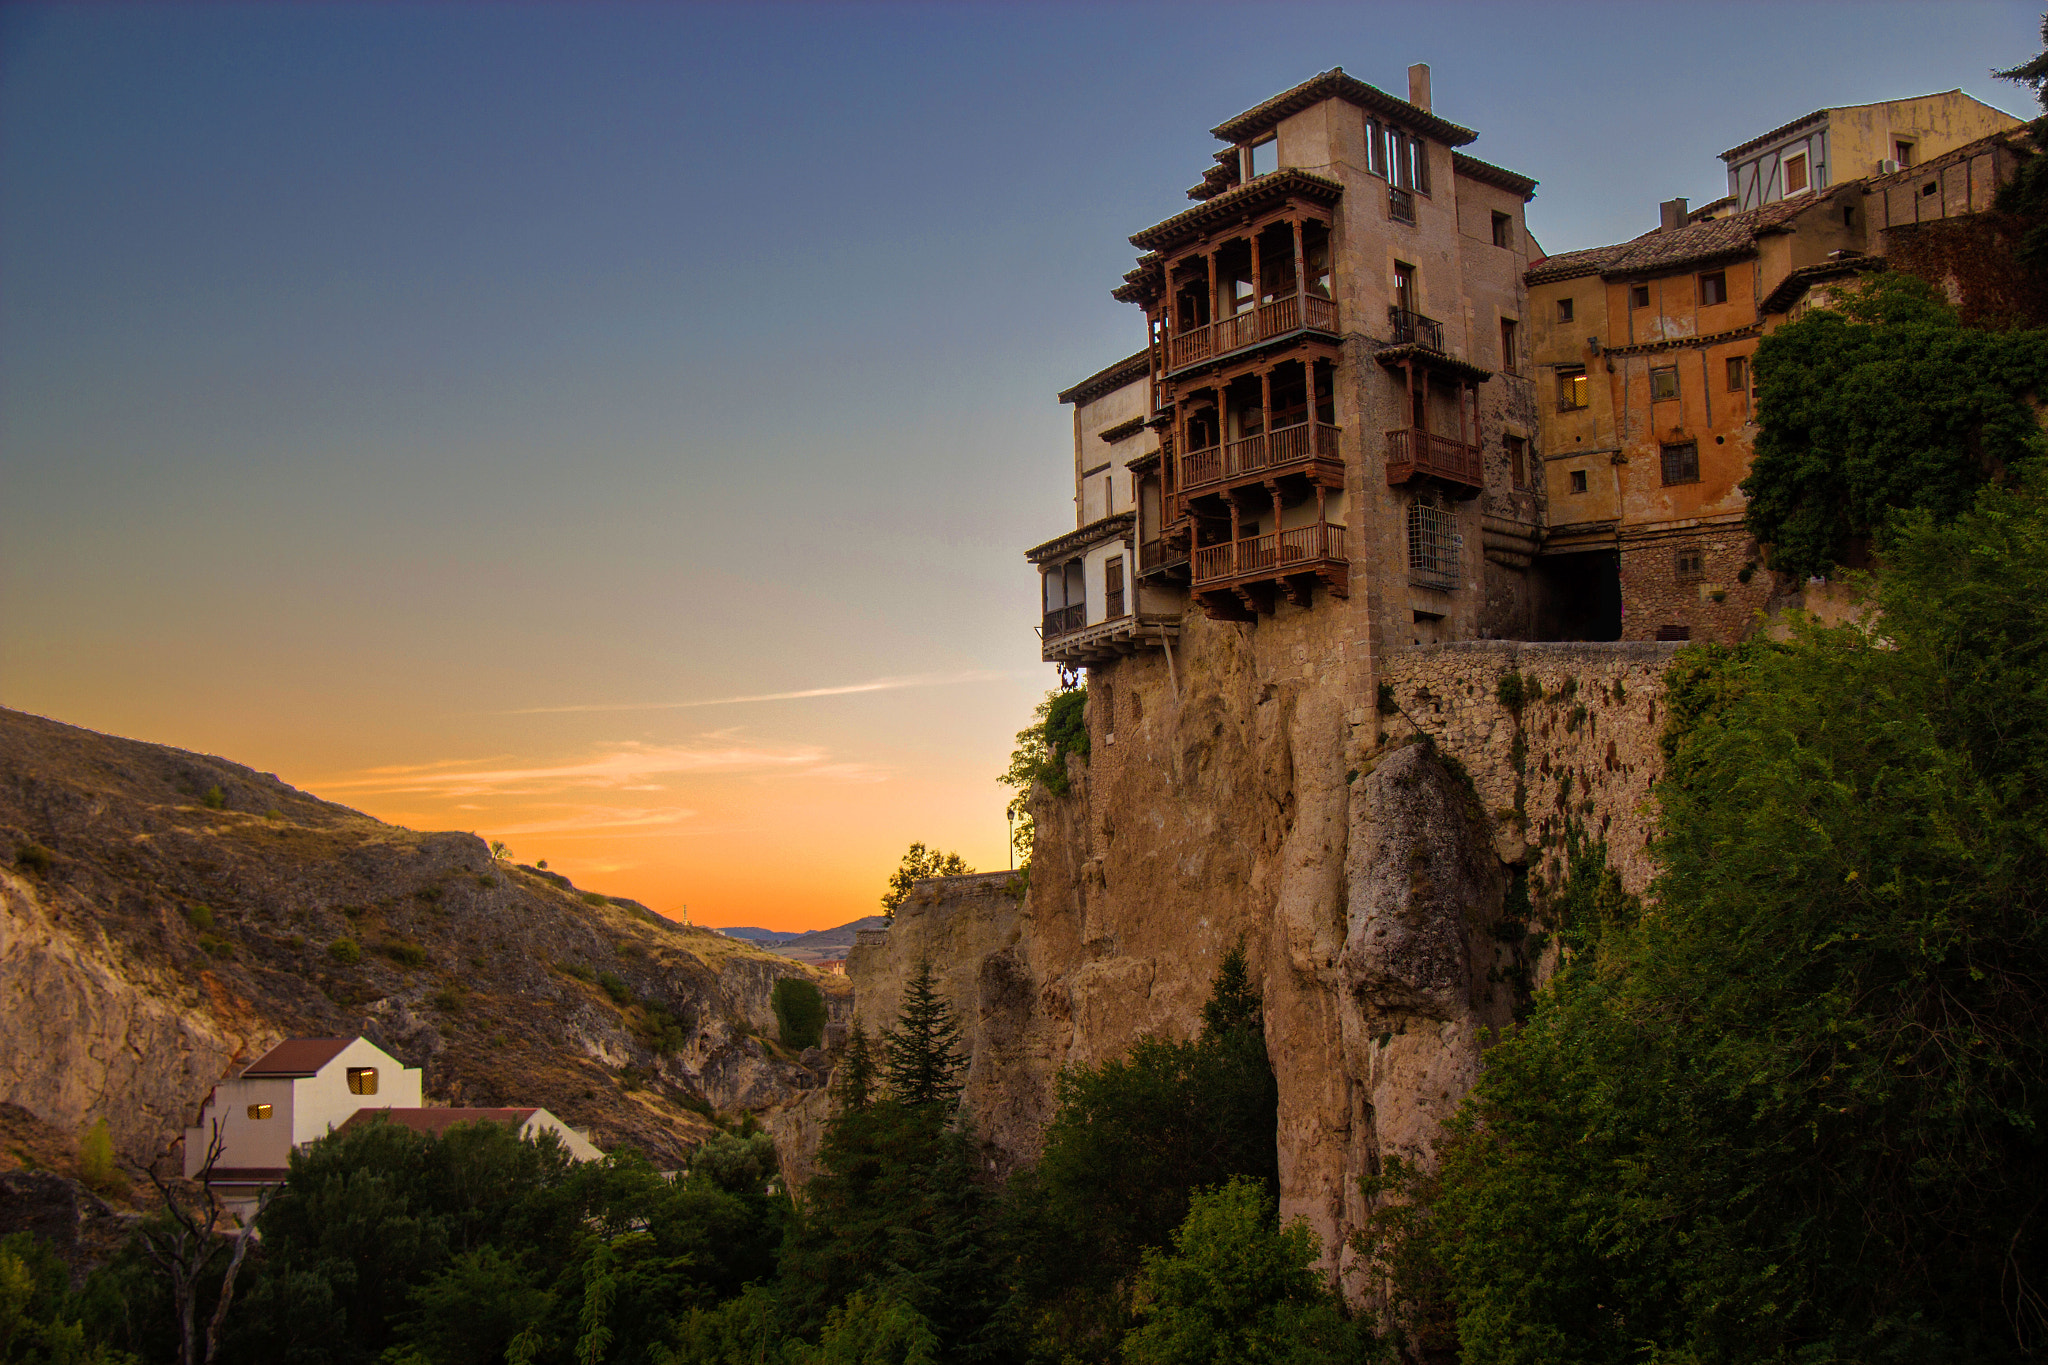 Photograph Cuenca sunset by Carlos Luque on 500px